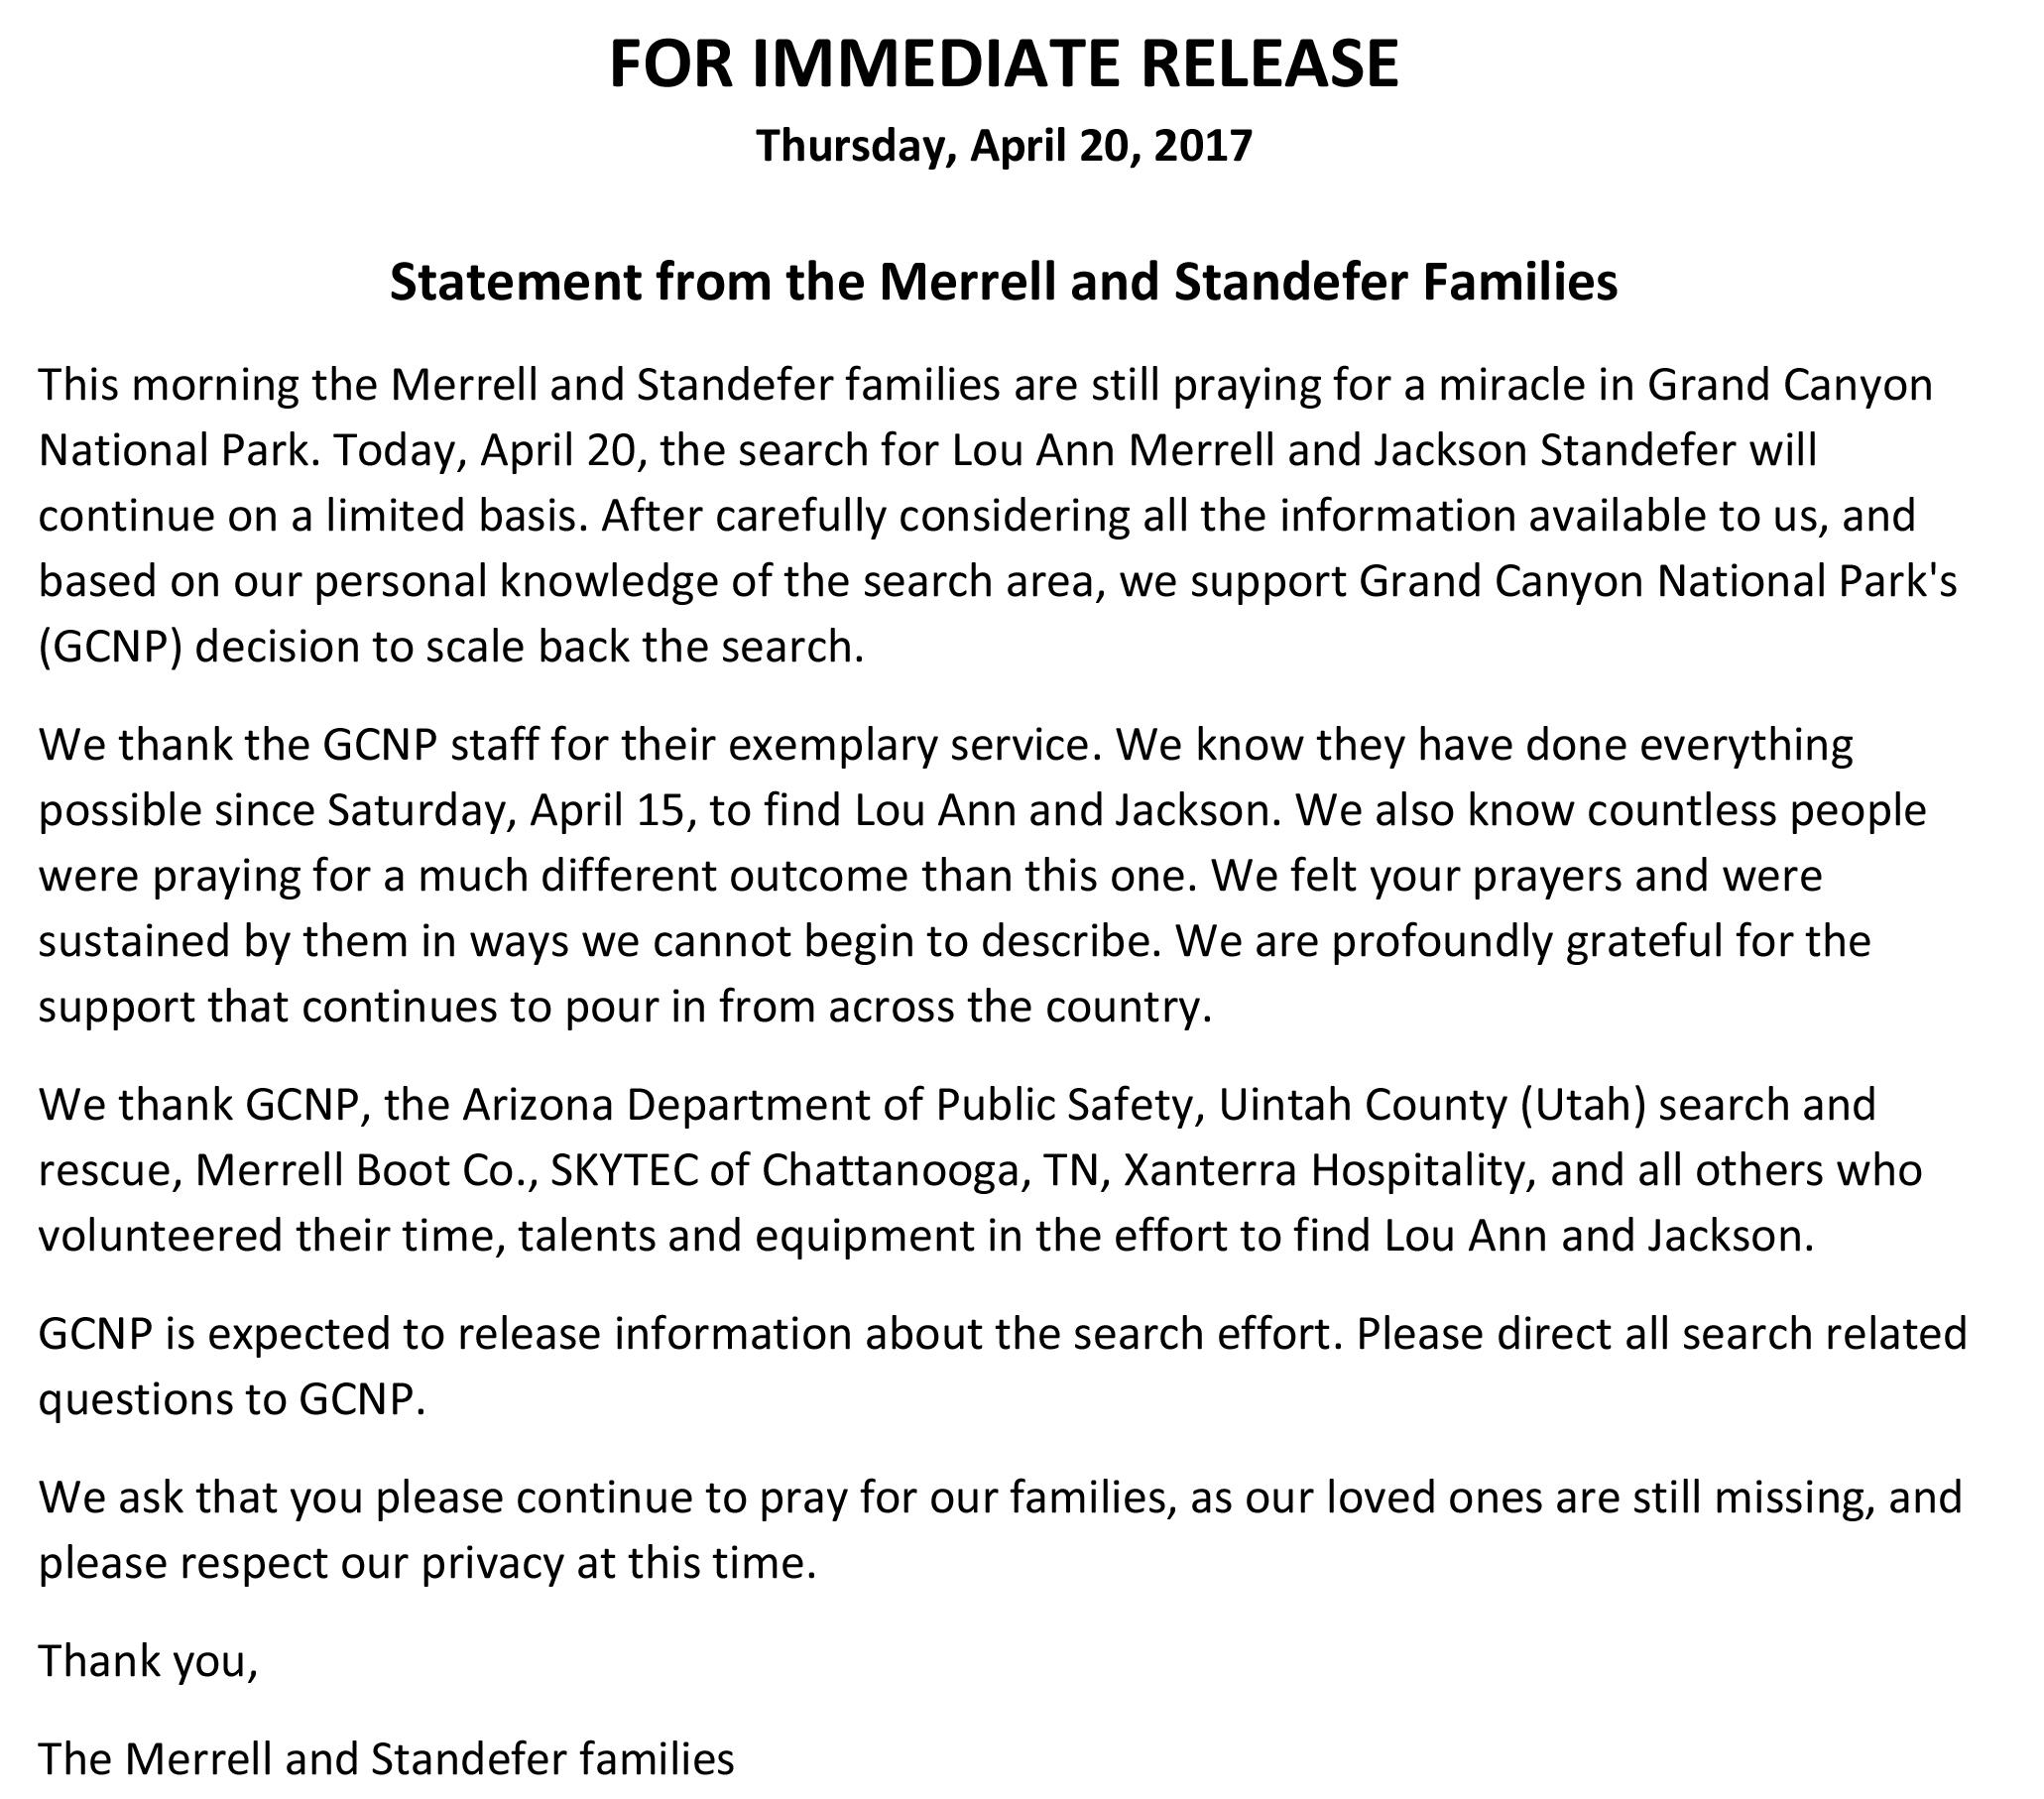 Families of missing hikers support scaling back search, still 'praying for a miracle' (Statement by Merrell and Standefer families)